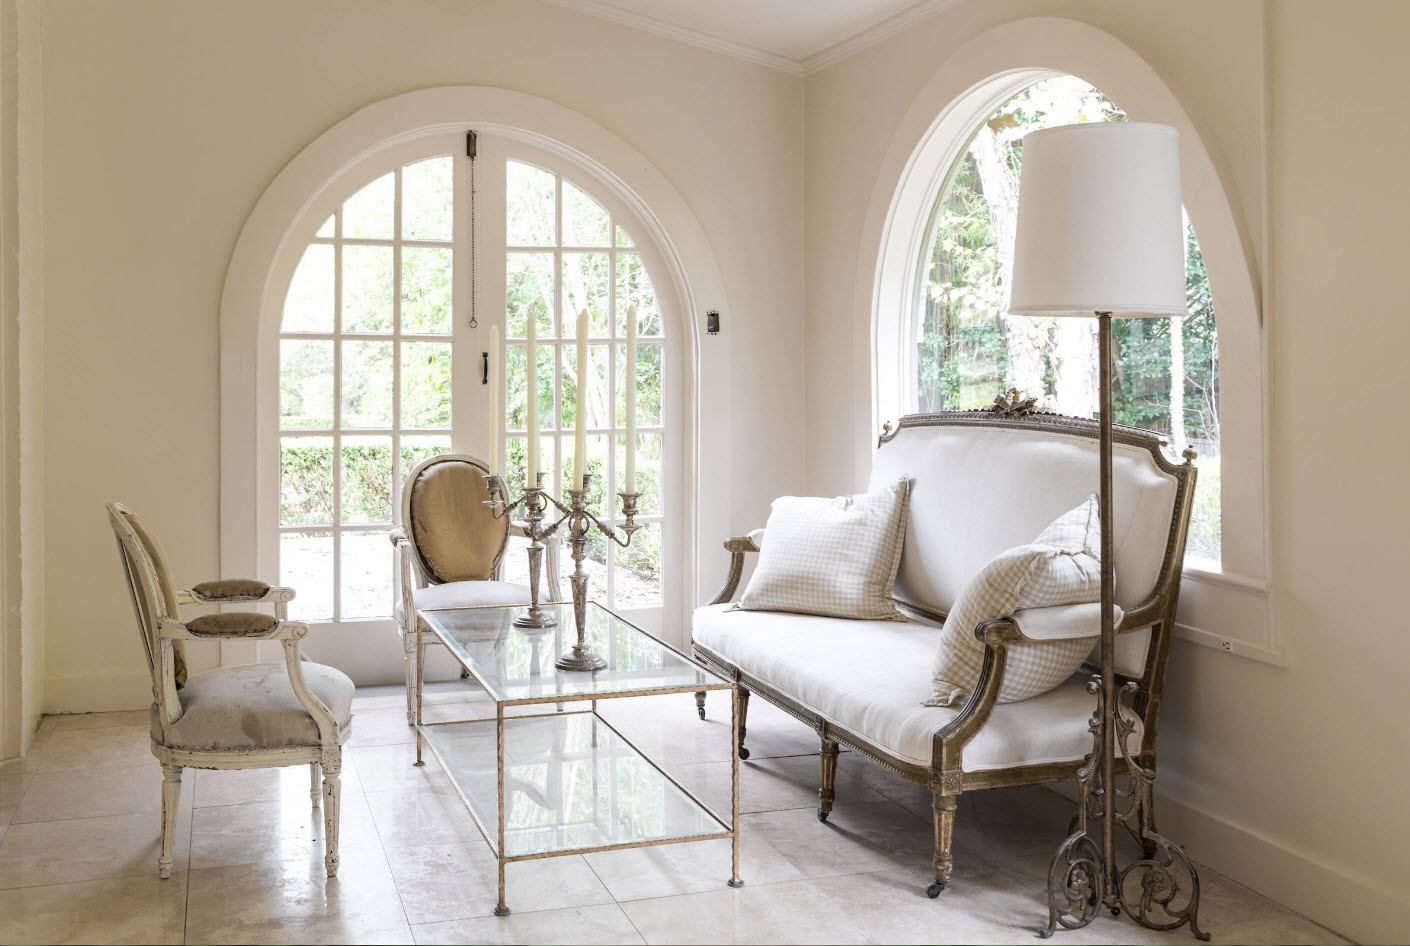 Arch in the Living Room: Unusual Design with Photos. Arched entrance door of glass sash